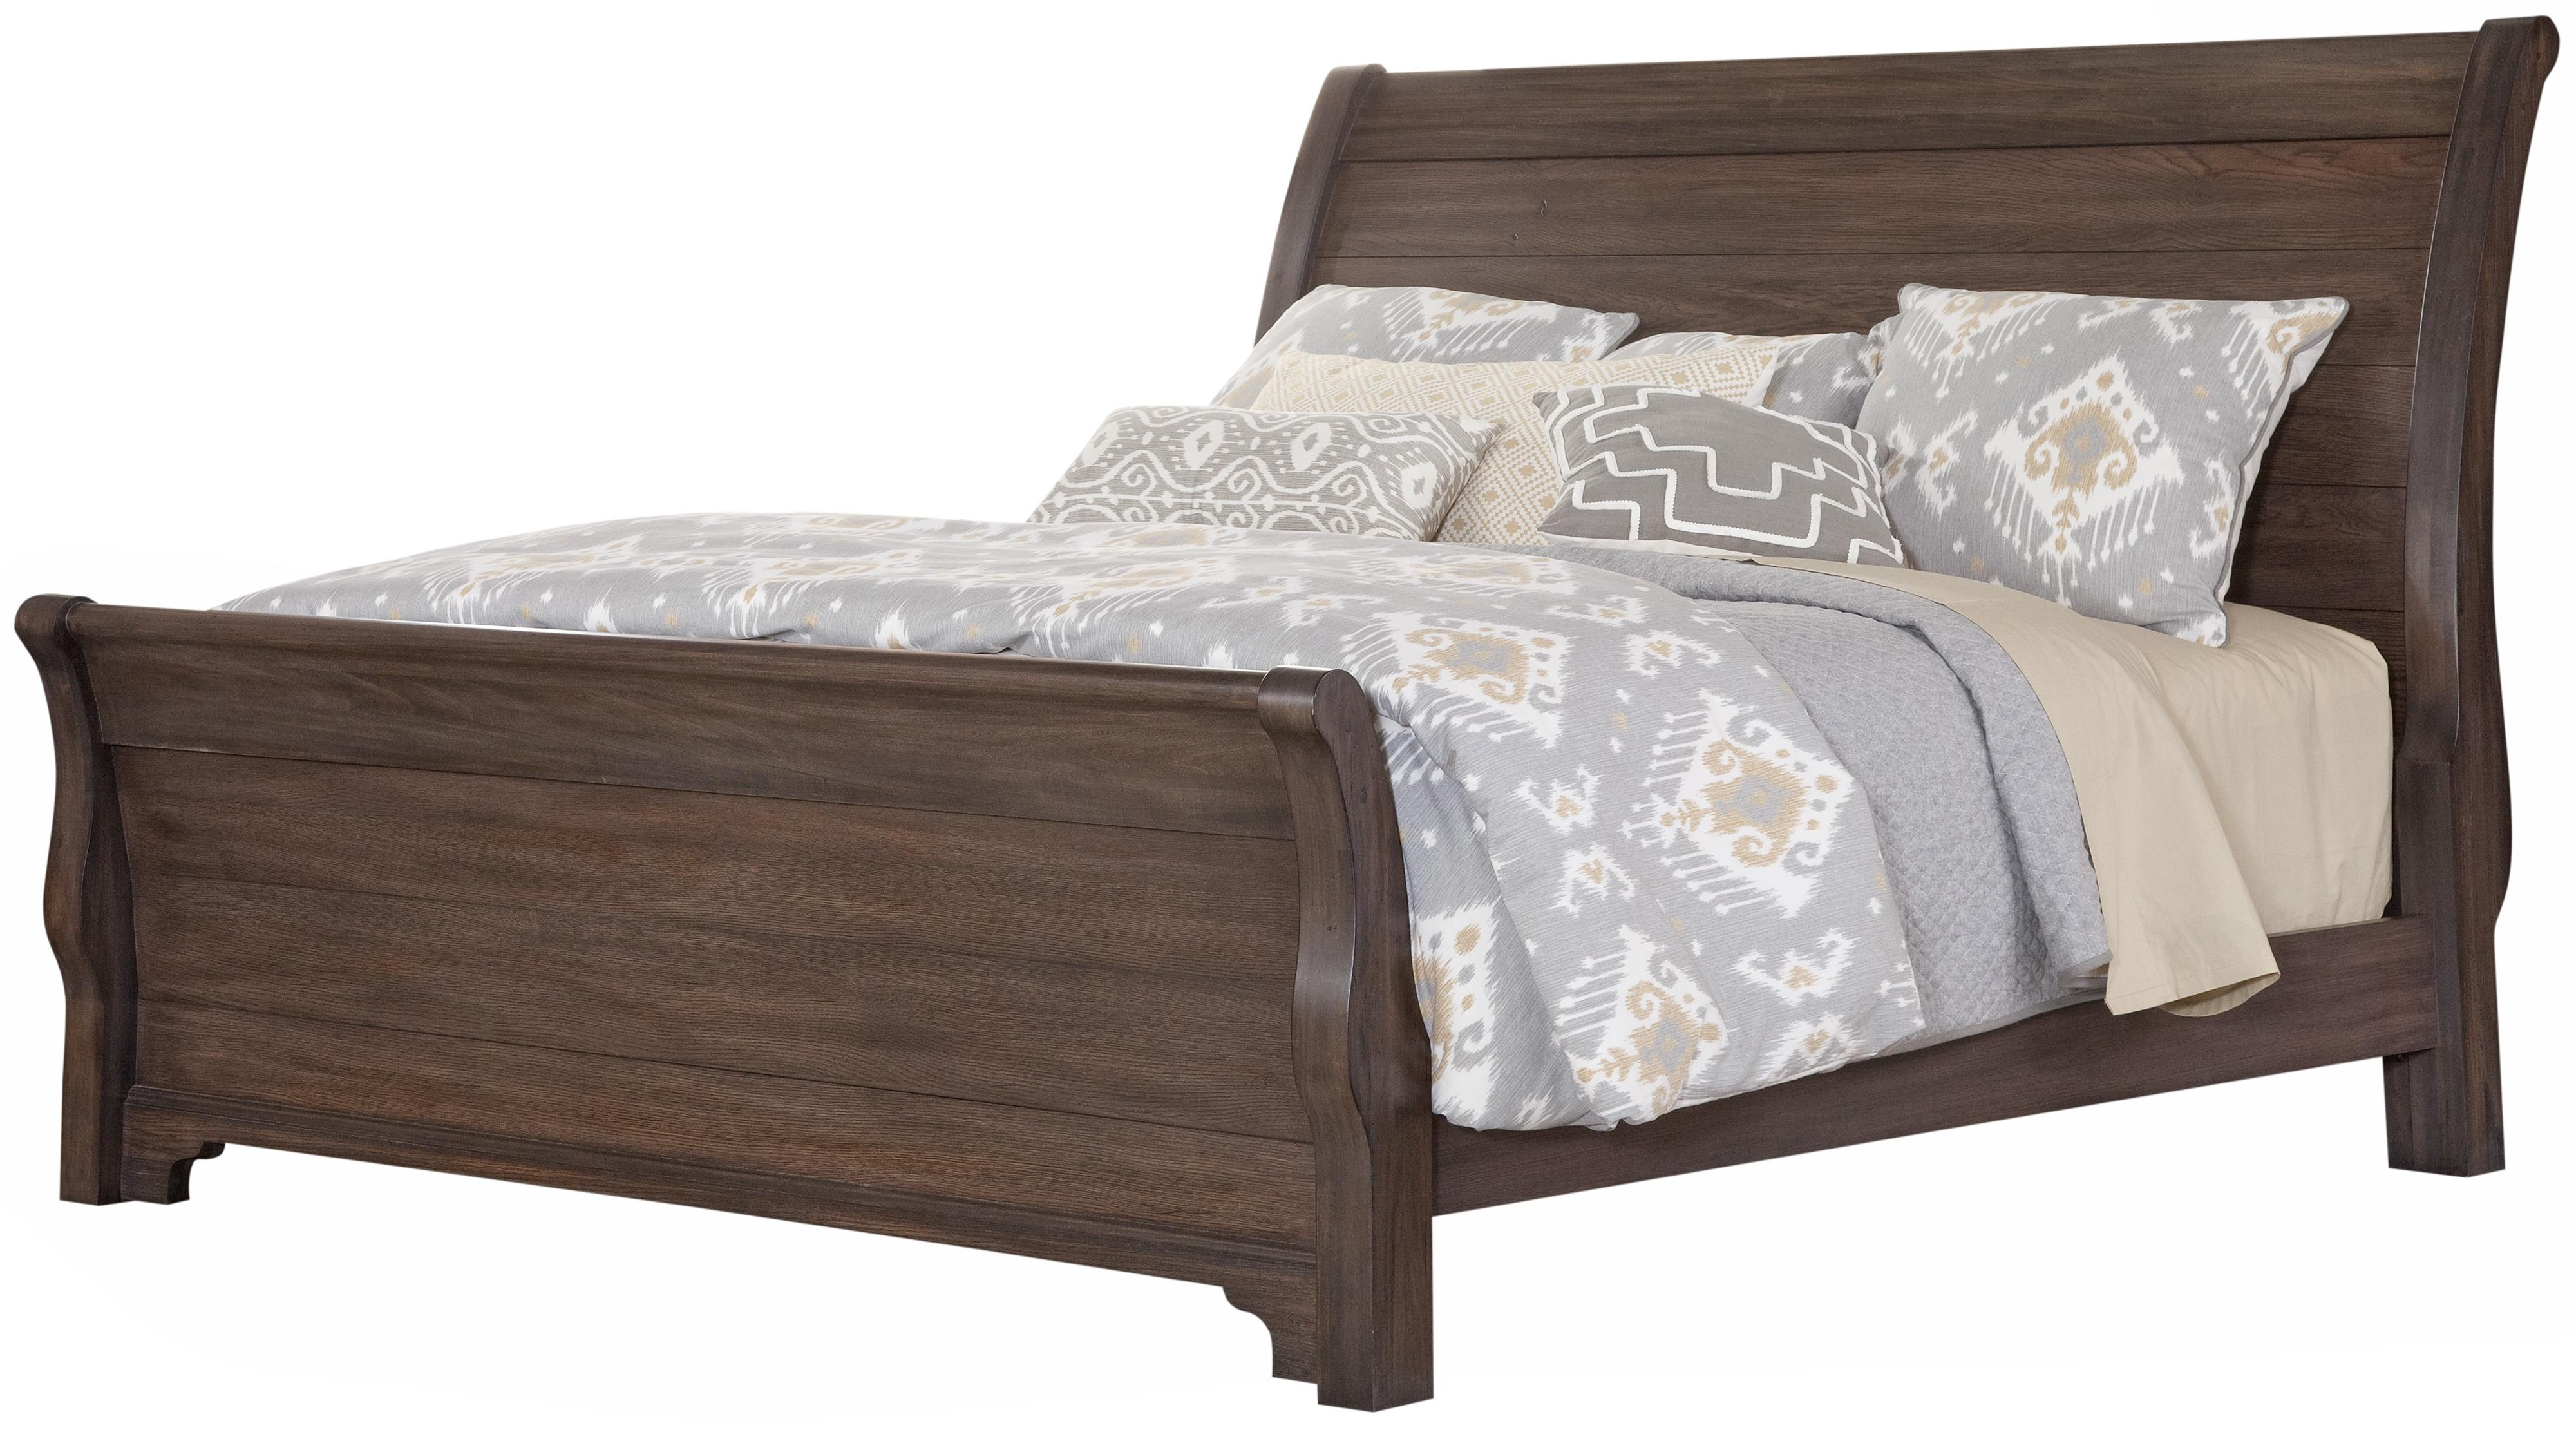 Vaughan Bassett Whiskey Barrel Queen Sleigh Bed - Item Number: 816-553+355+722